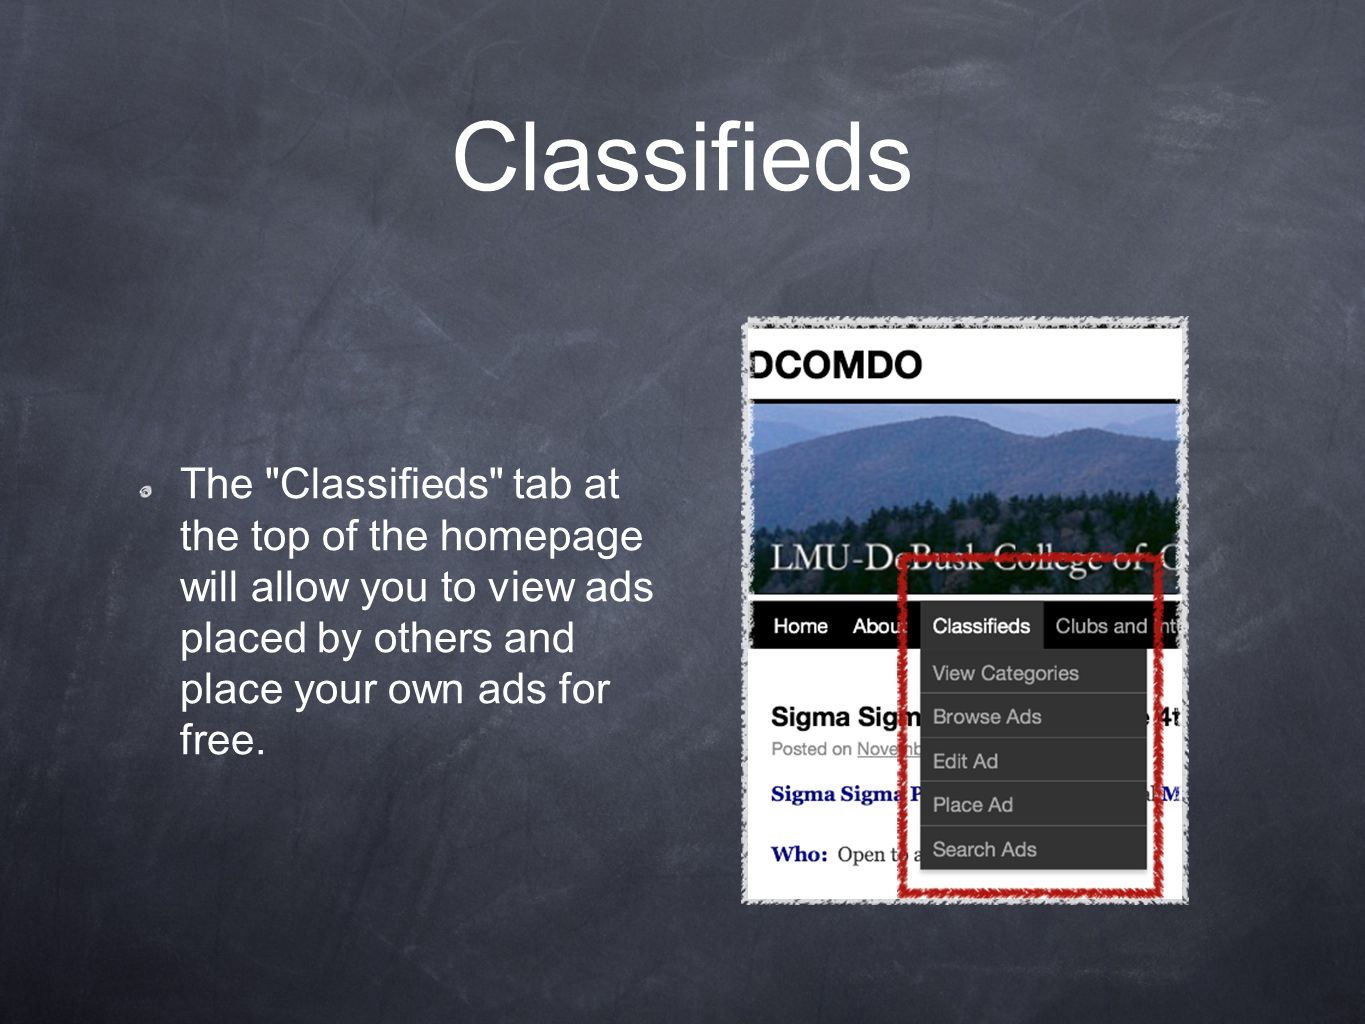 Classifieds The Classifieds tab at the top of the homepage will allow you to view ads placed by others and place your own ads for free.